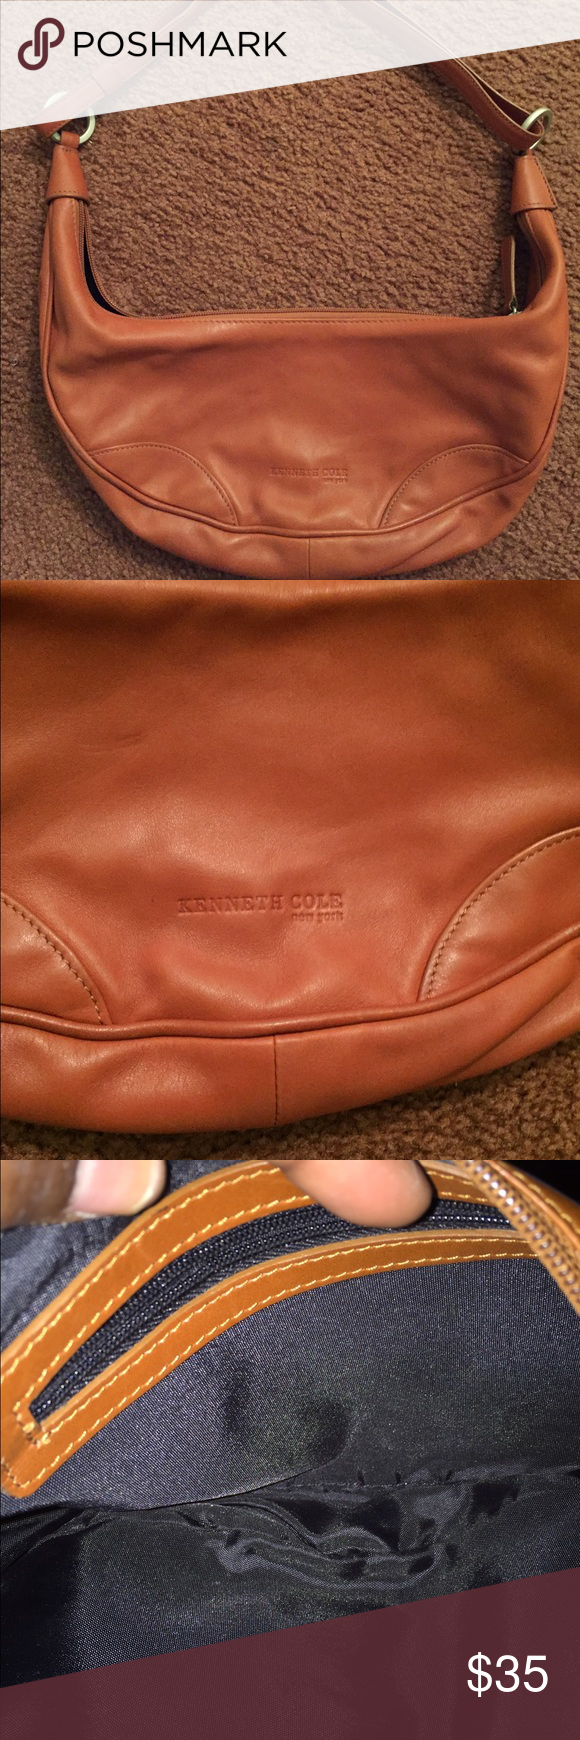 Kenneth Cole Handbag Camel color bag/Good condition Kenneth Cole Bags Mini Bags